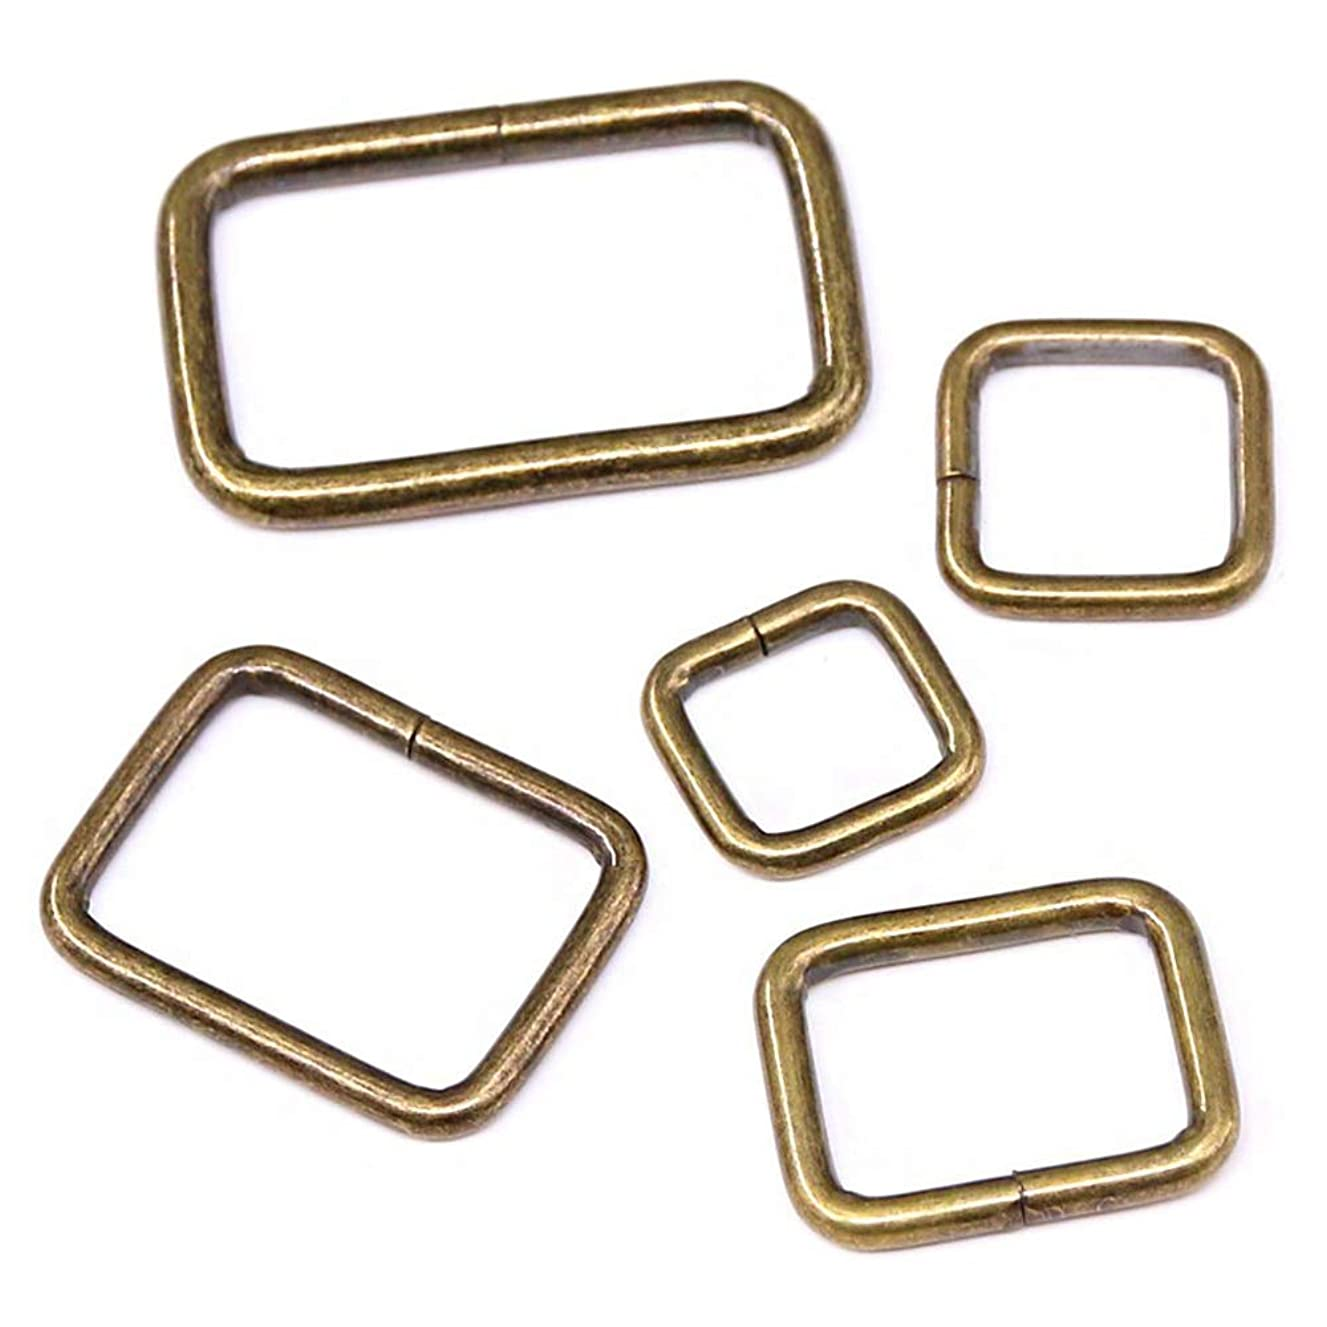 Swpeet 50 Pcs Bronze Assorted Metal Rectangle Ring, Webbing Belts Buckle for for Belt Bags DIY Accessories - 13mm / 15mm / 20mm / 25mm / 35mm